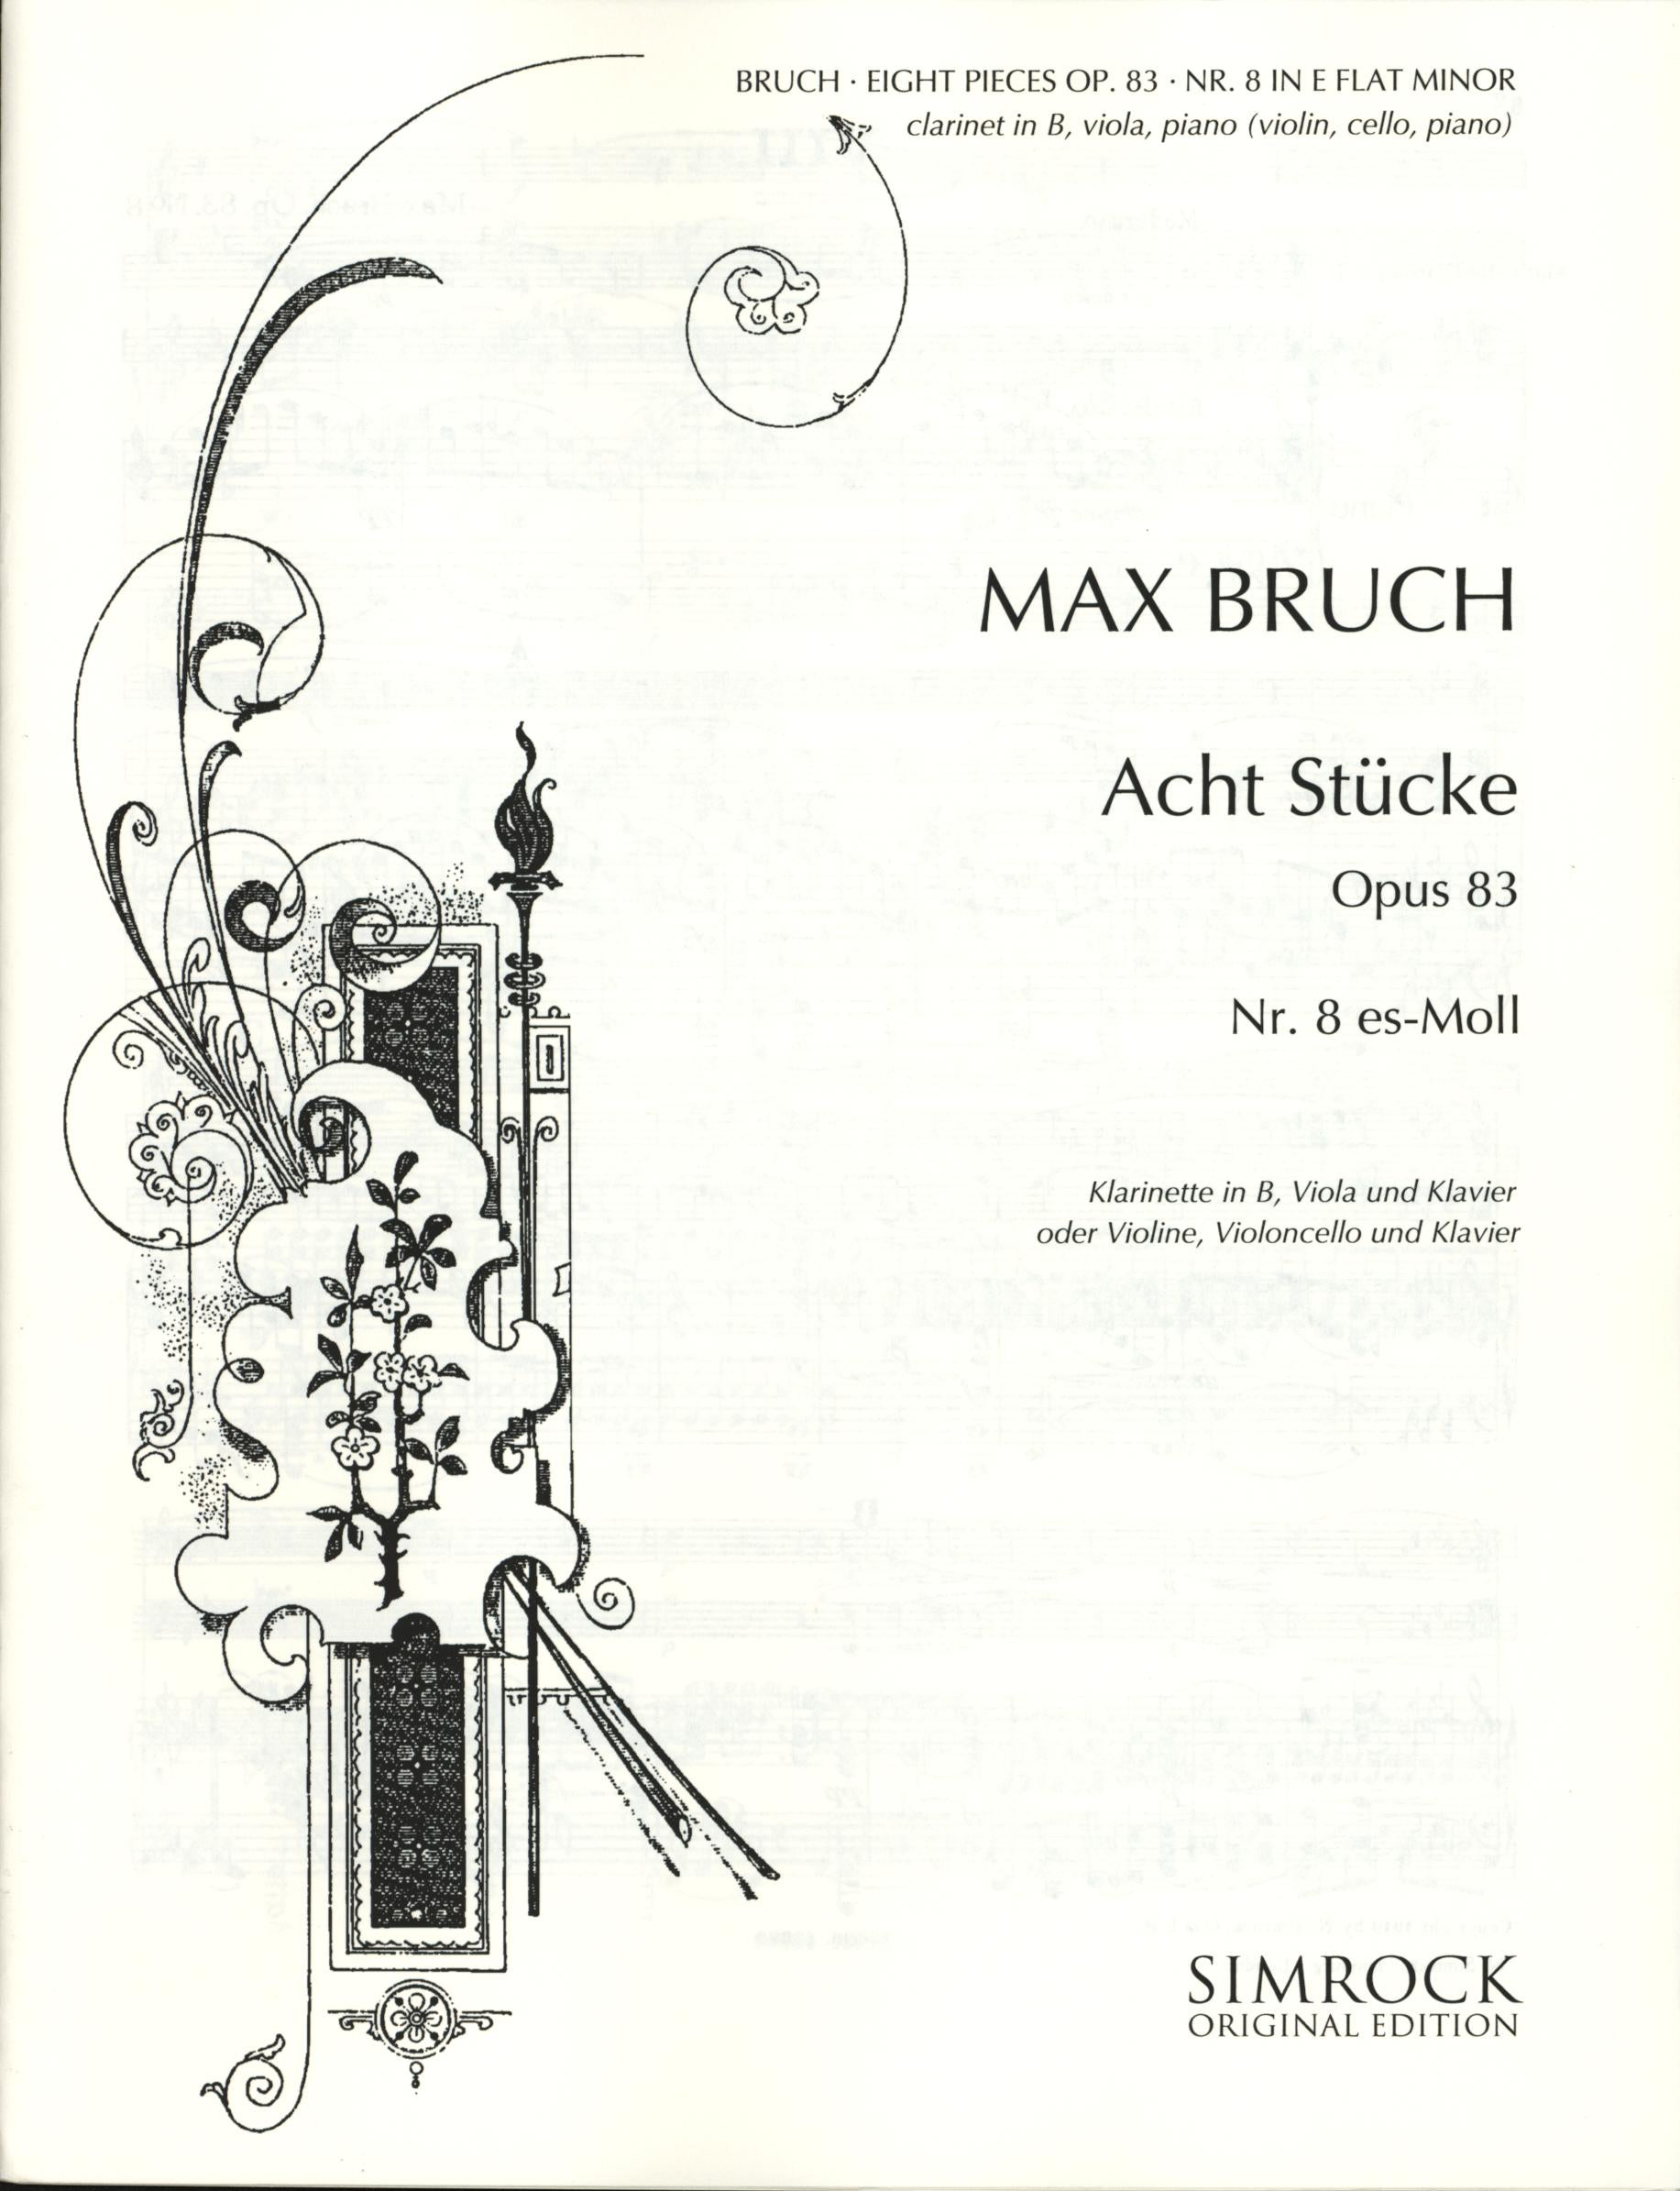 Bruch: Eight Pieces, Op. 83, No. 8